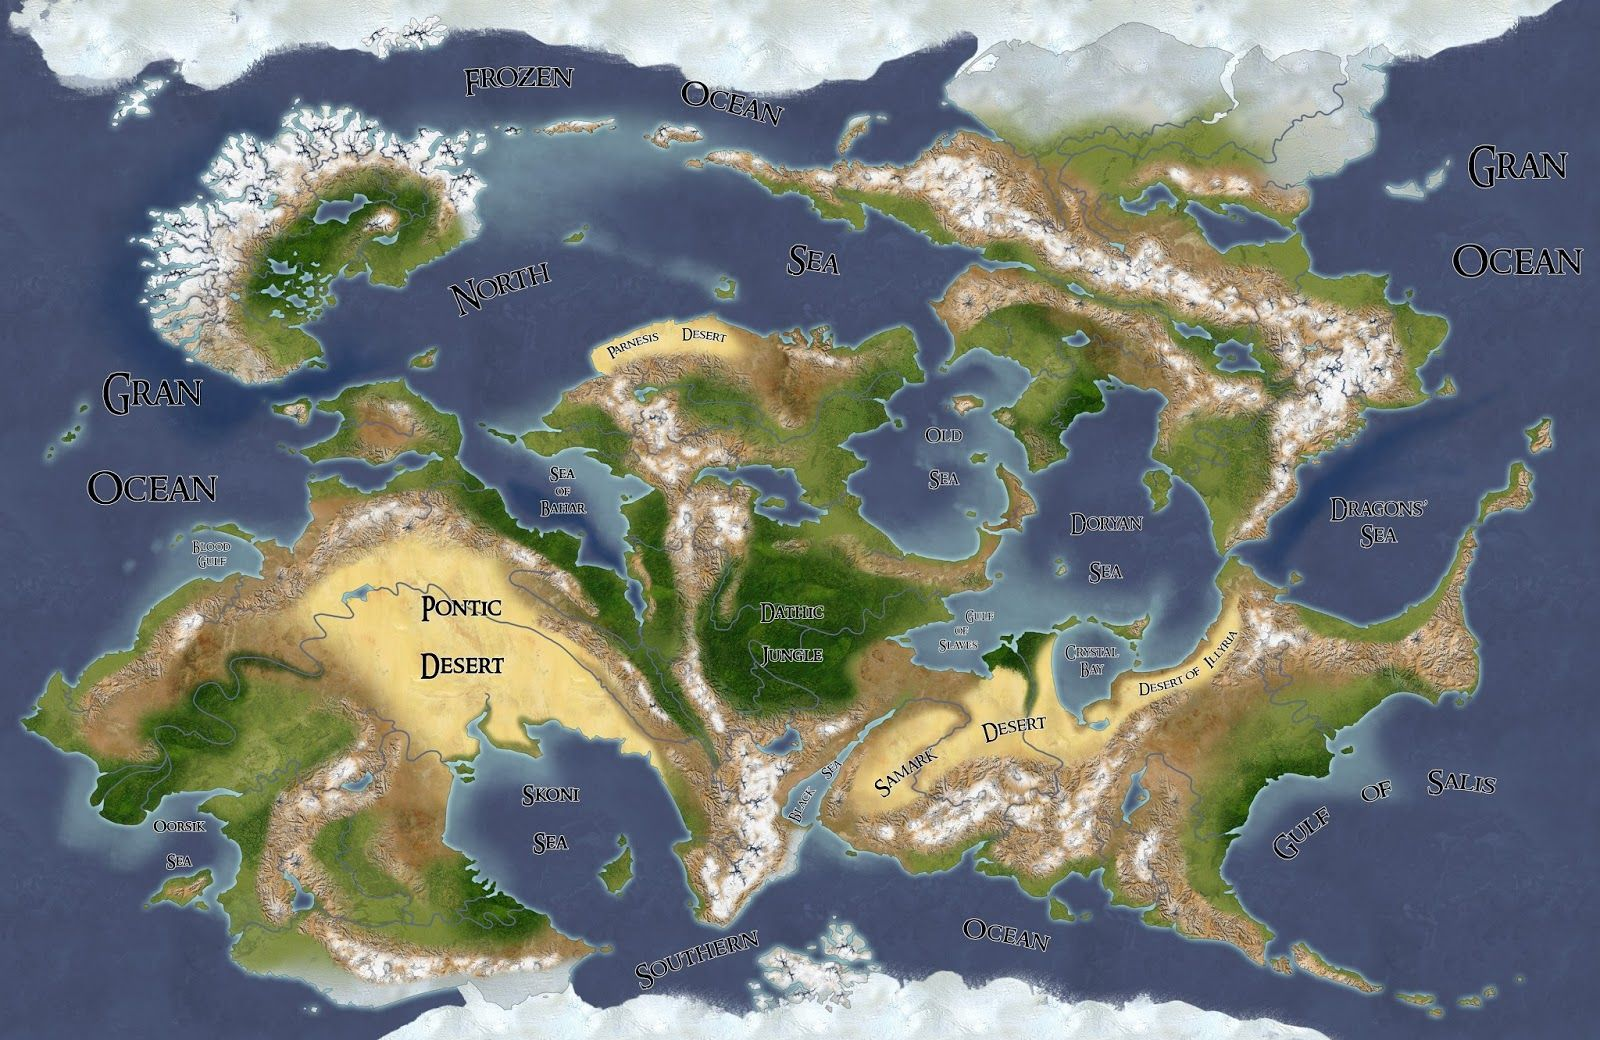 Fantasy maps displaying 18 images for fantasy world map fantasy maps displaying 18 images for fantasy world map hogwarts gumiabroncs Choice Image